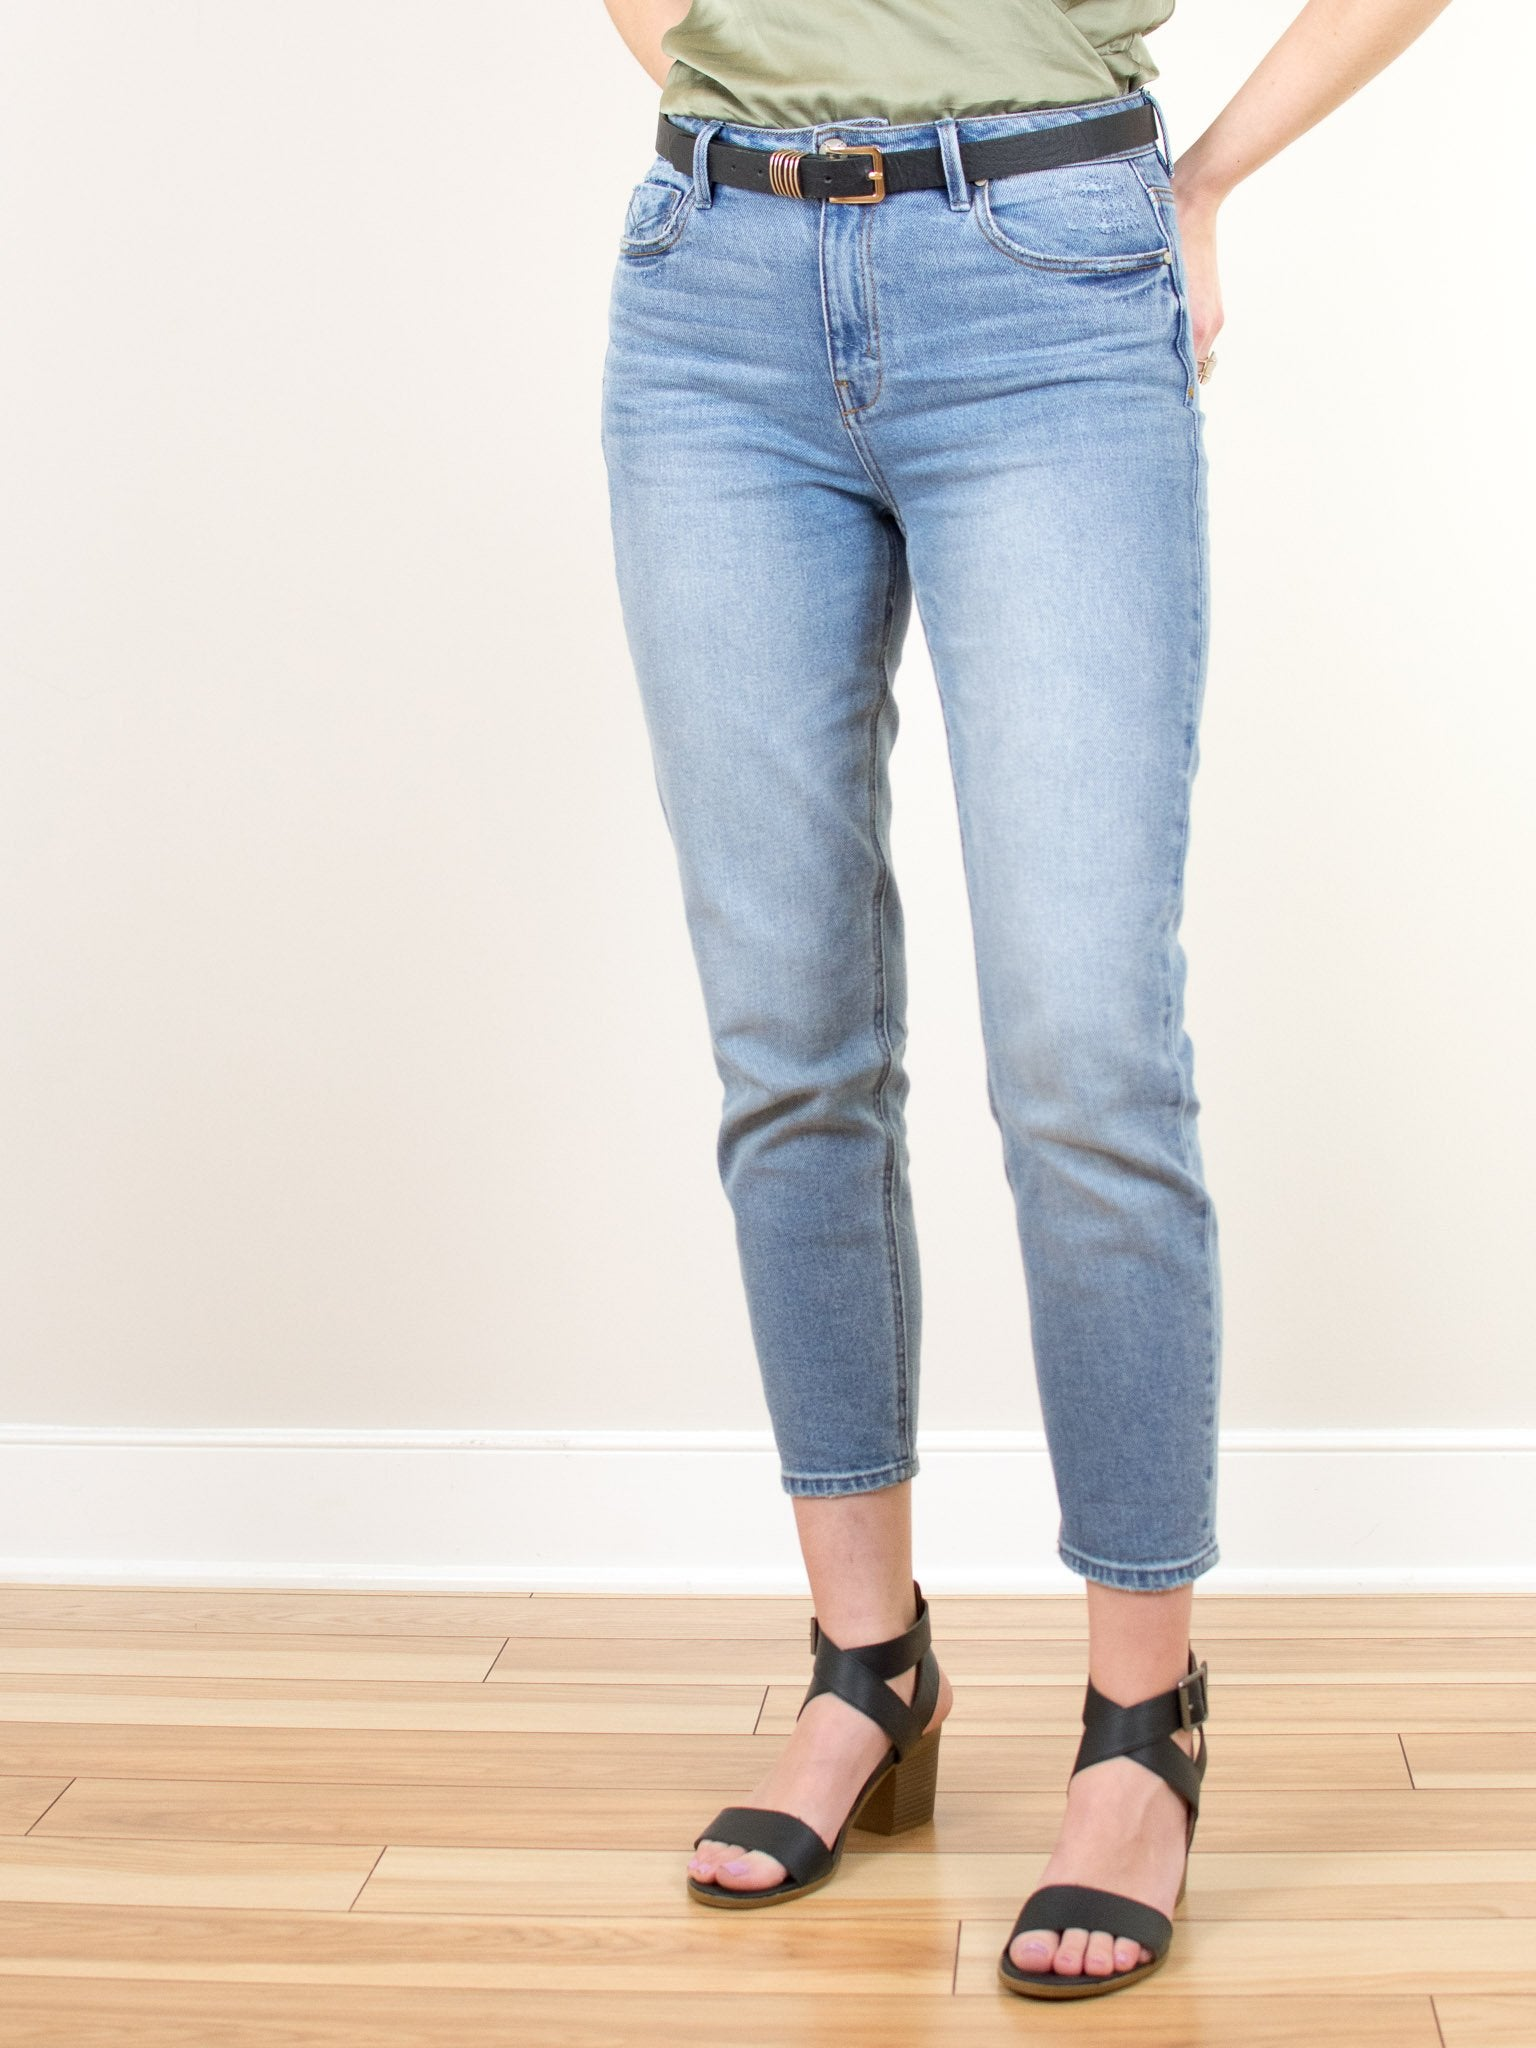 The Mom Jean by Unpublished